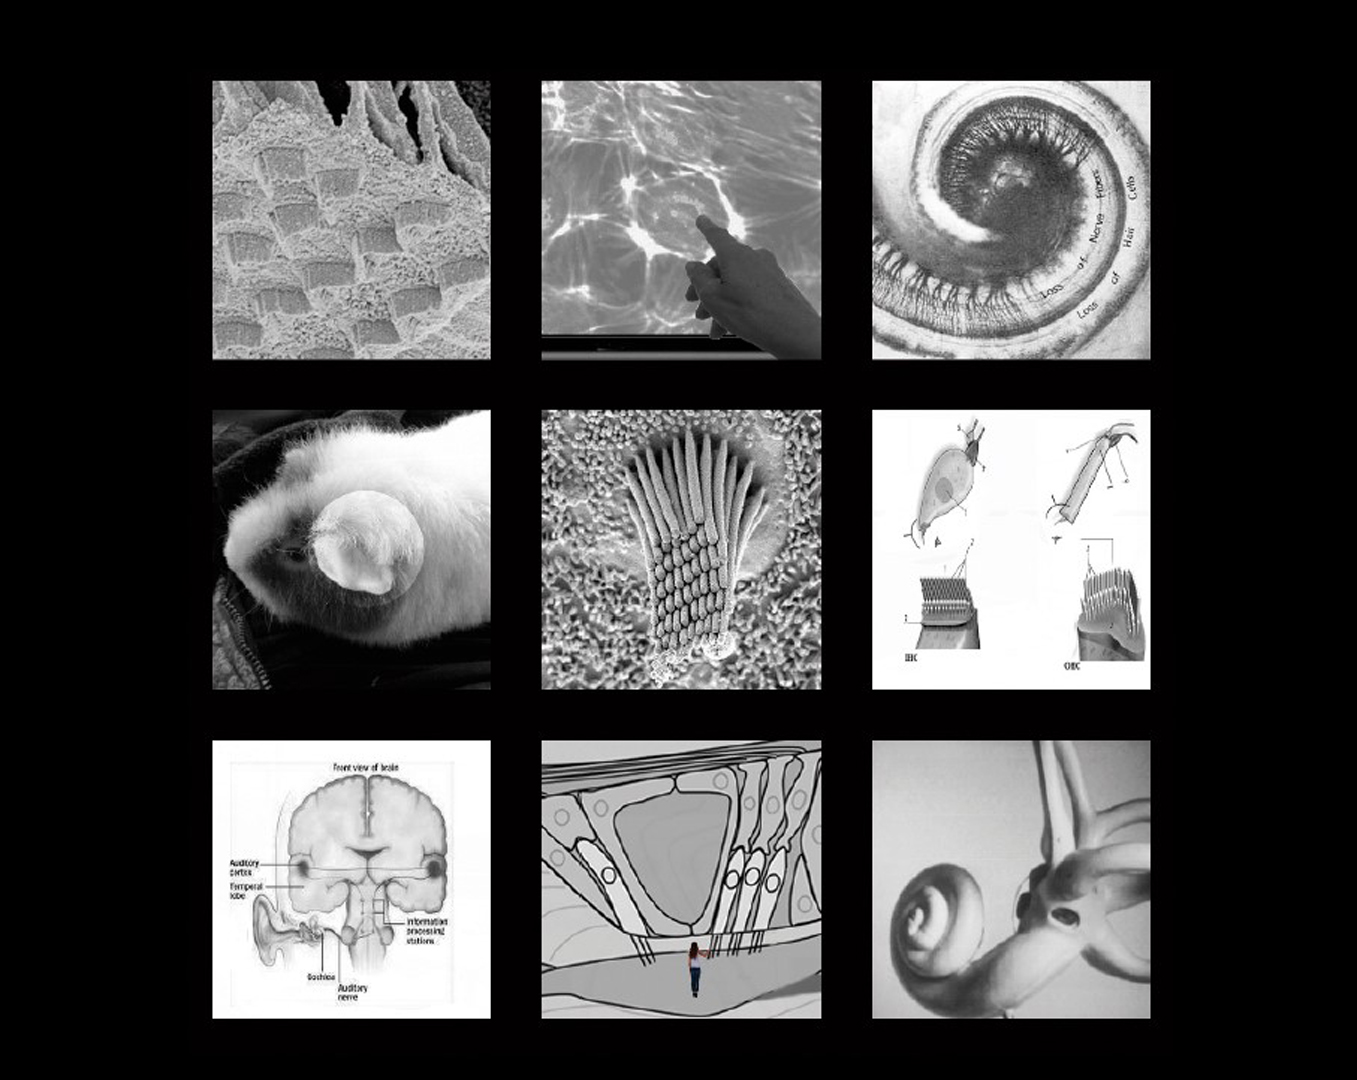 ©ISEA2016: 22nd International Symposium on Electronic Art, Jill Scott, AURALROOTS: Cross-modal Interaction and Learning